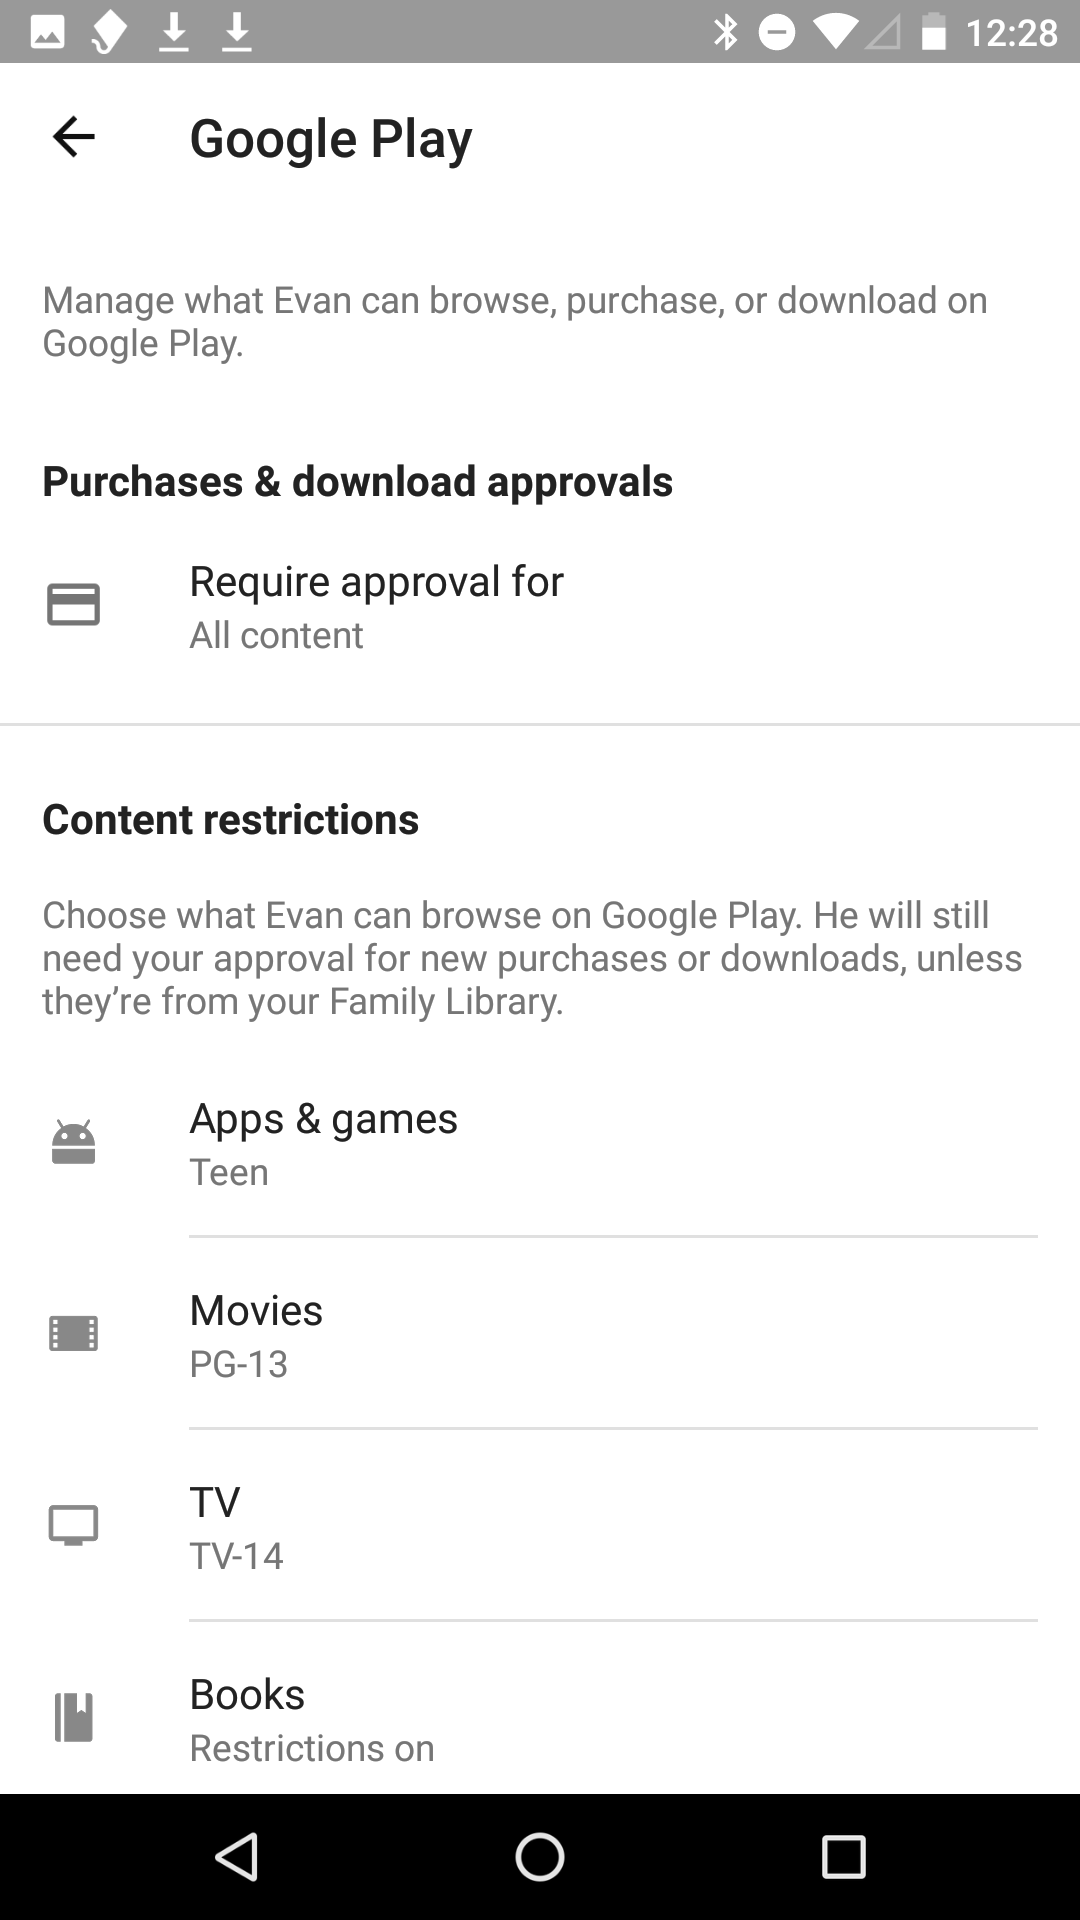 The parental controls for what your kid can do on Google Play.